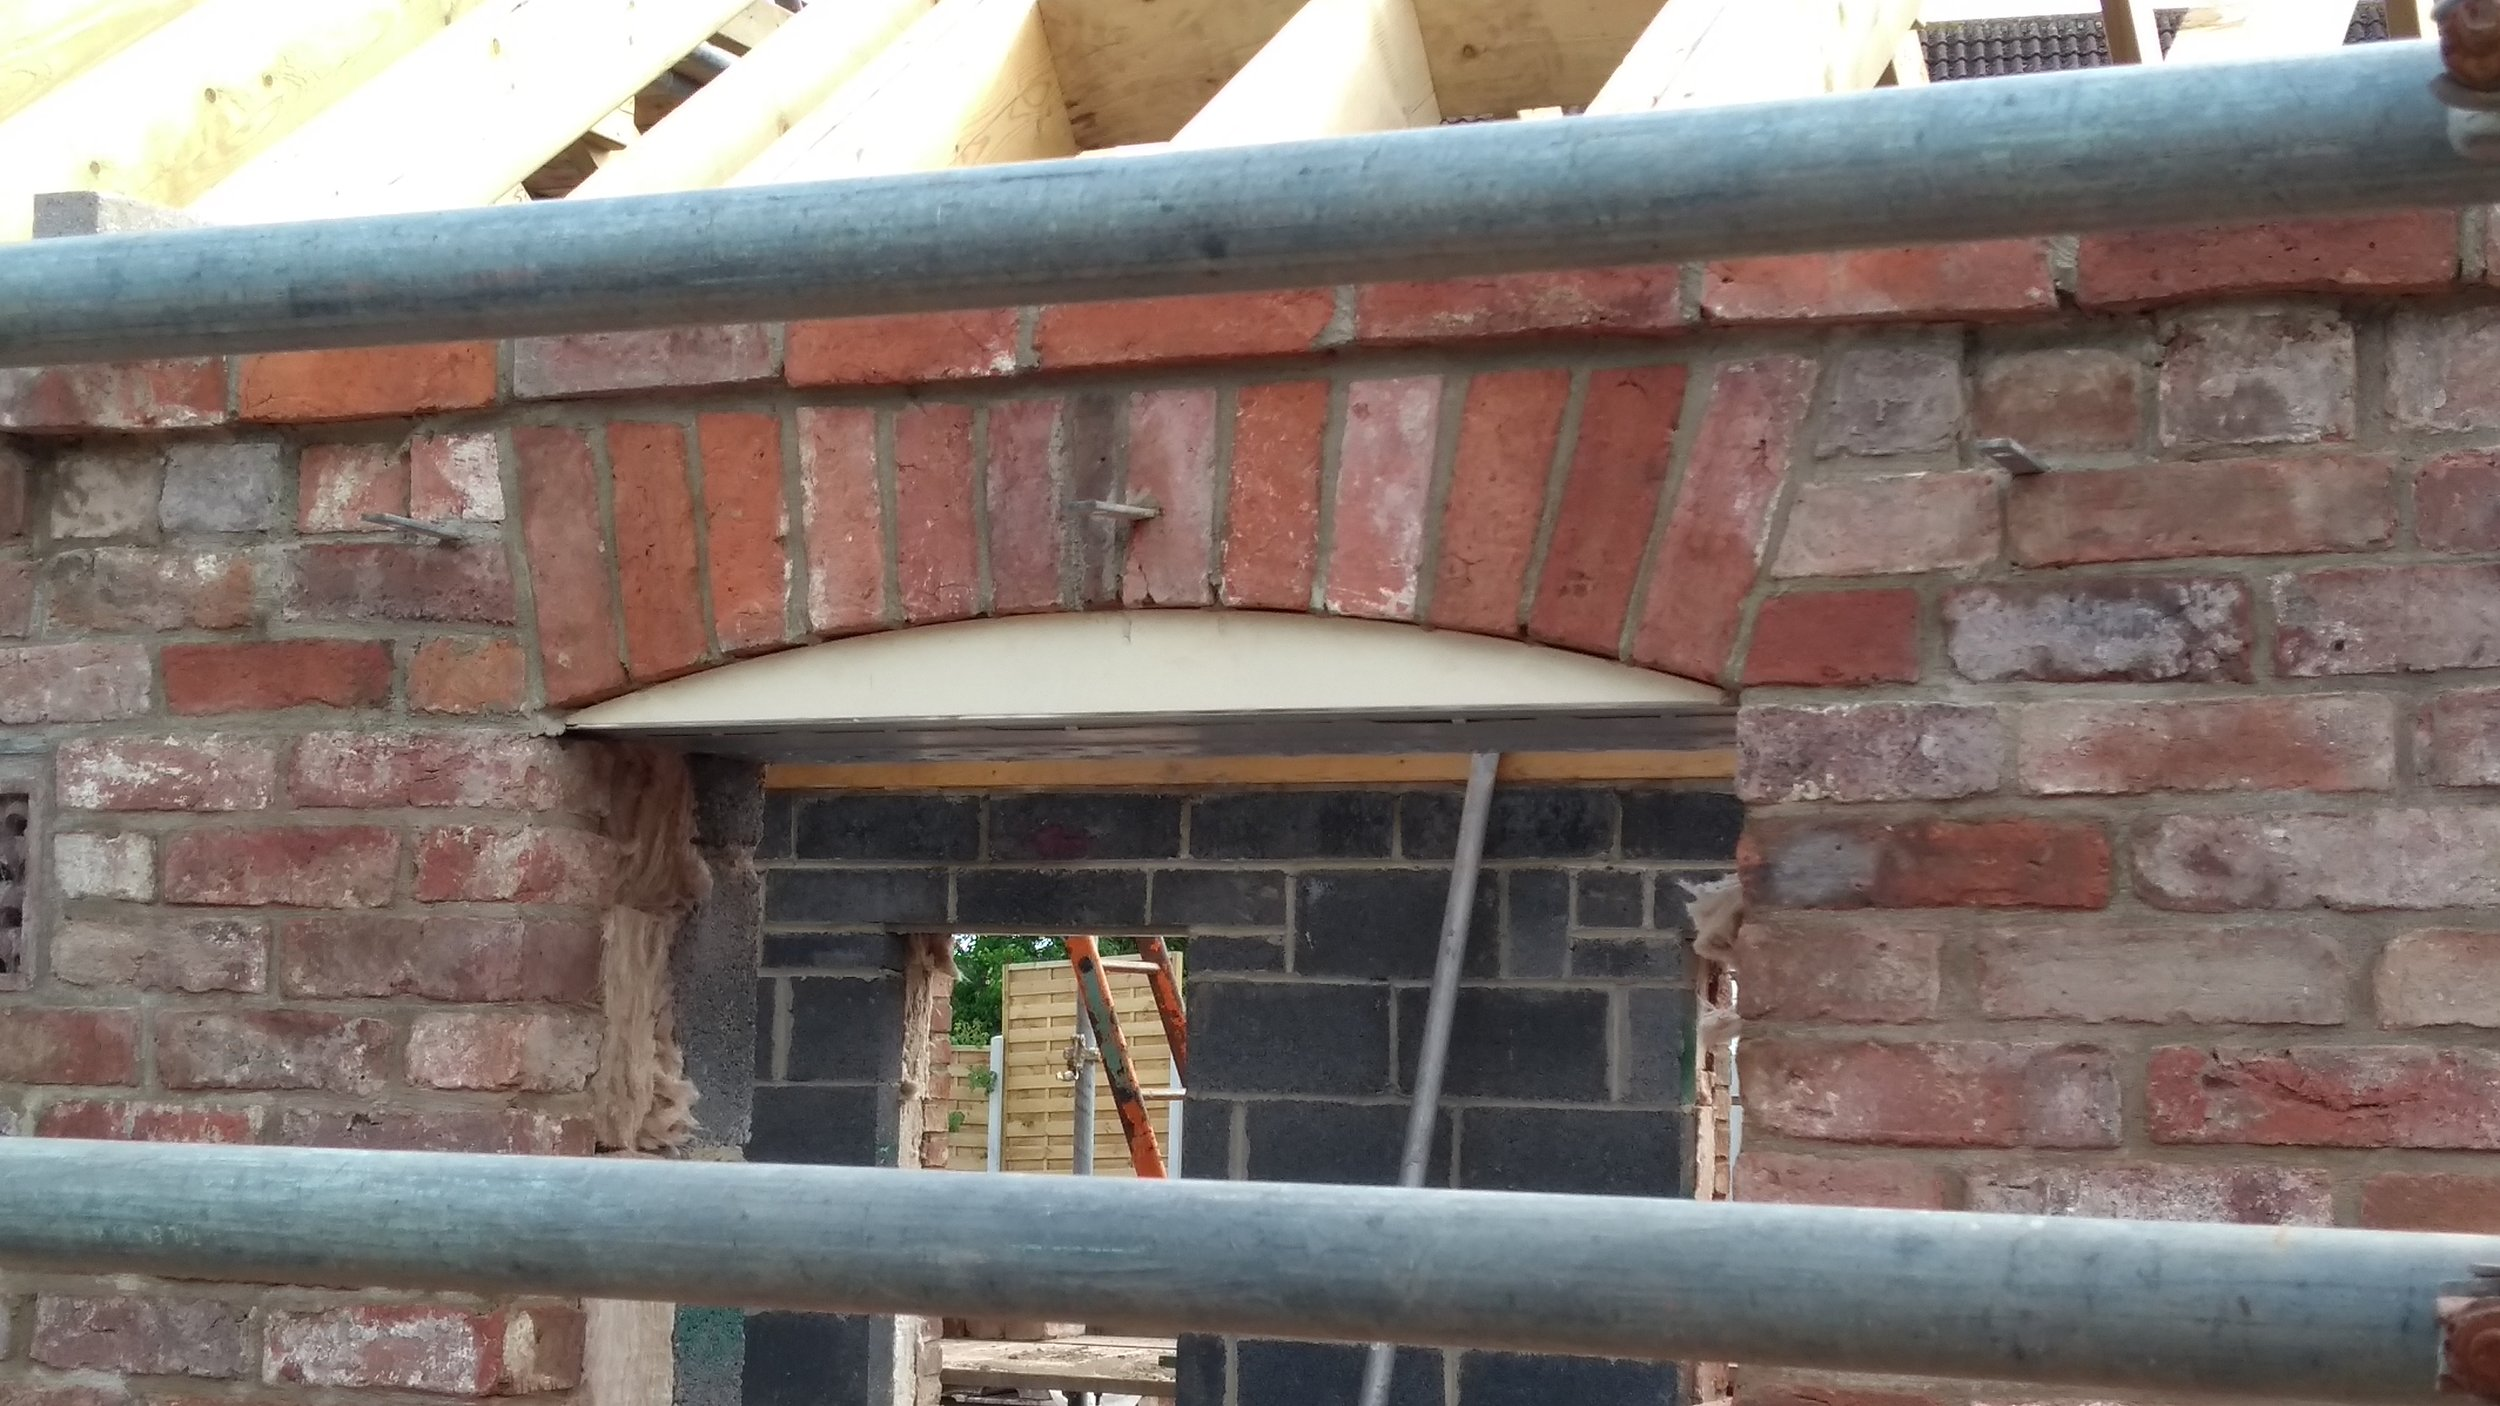 Detail of the brick arch and window cambered head (see, I even know the technical terms!)